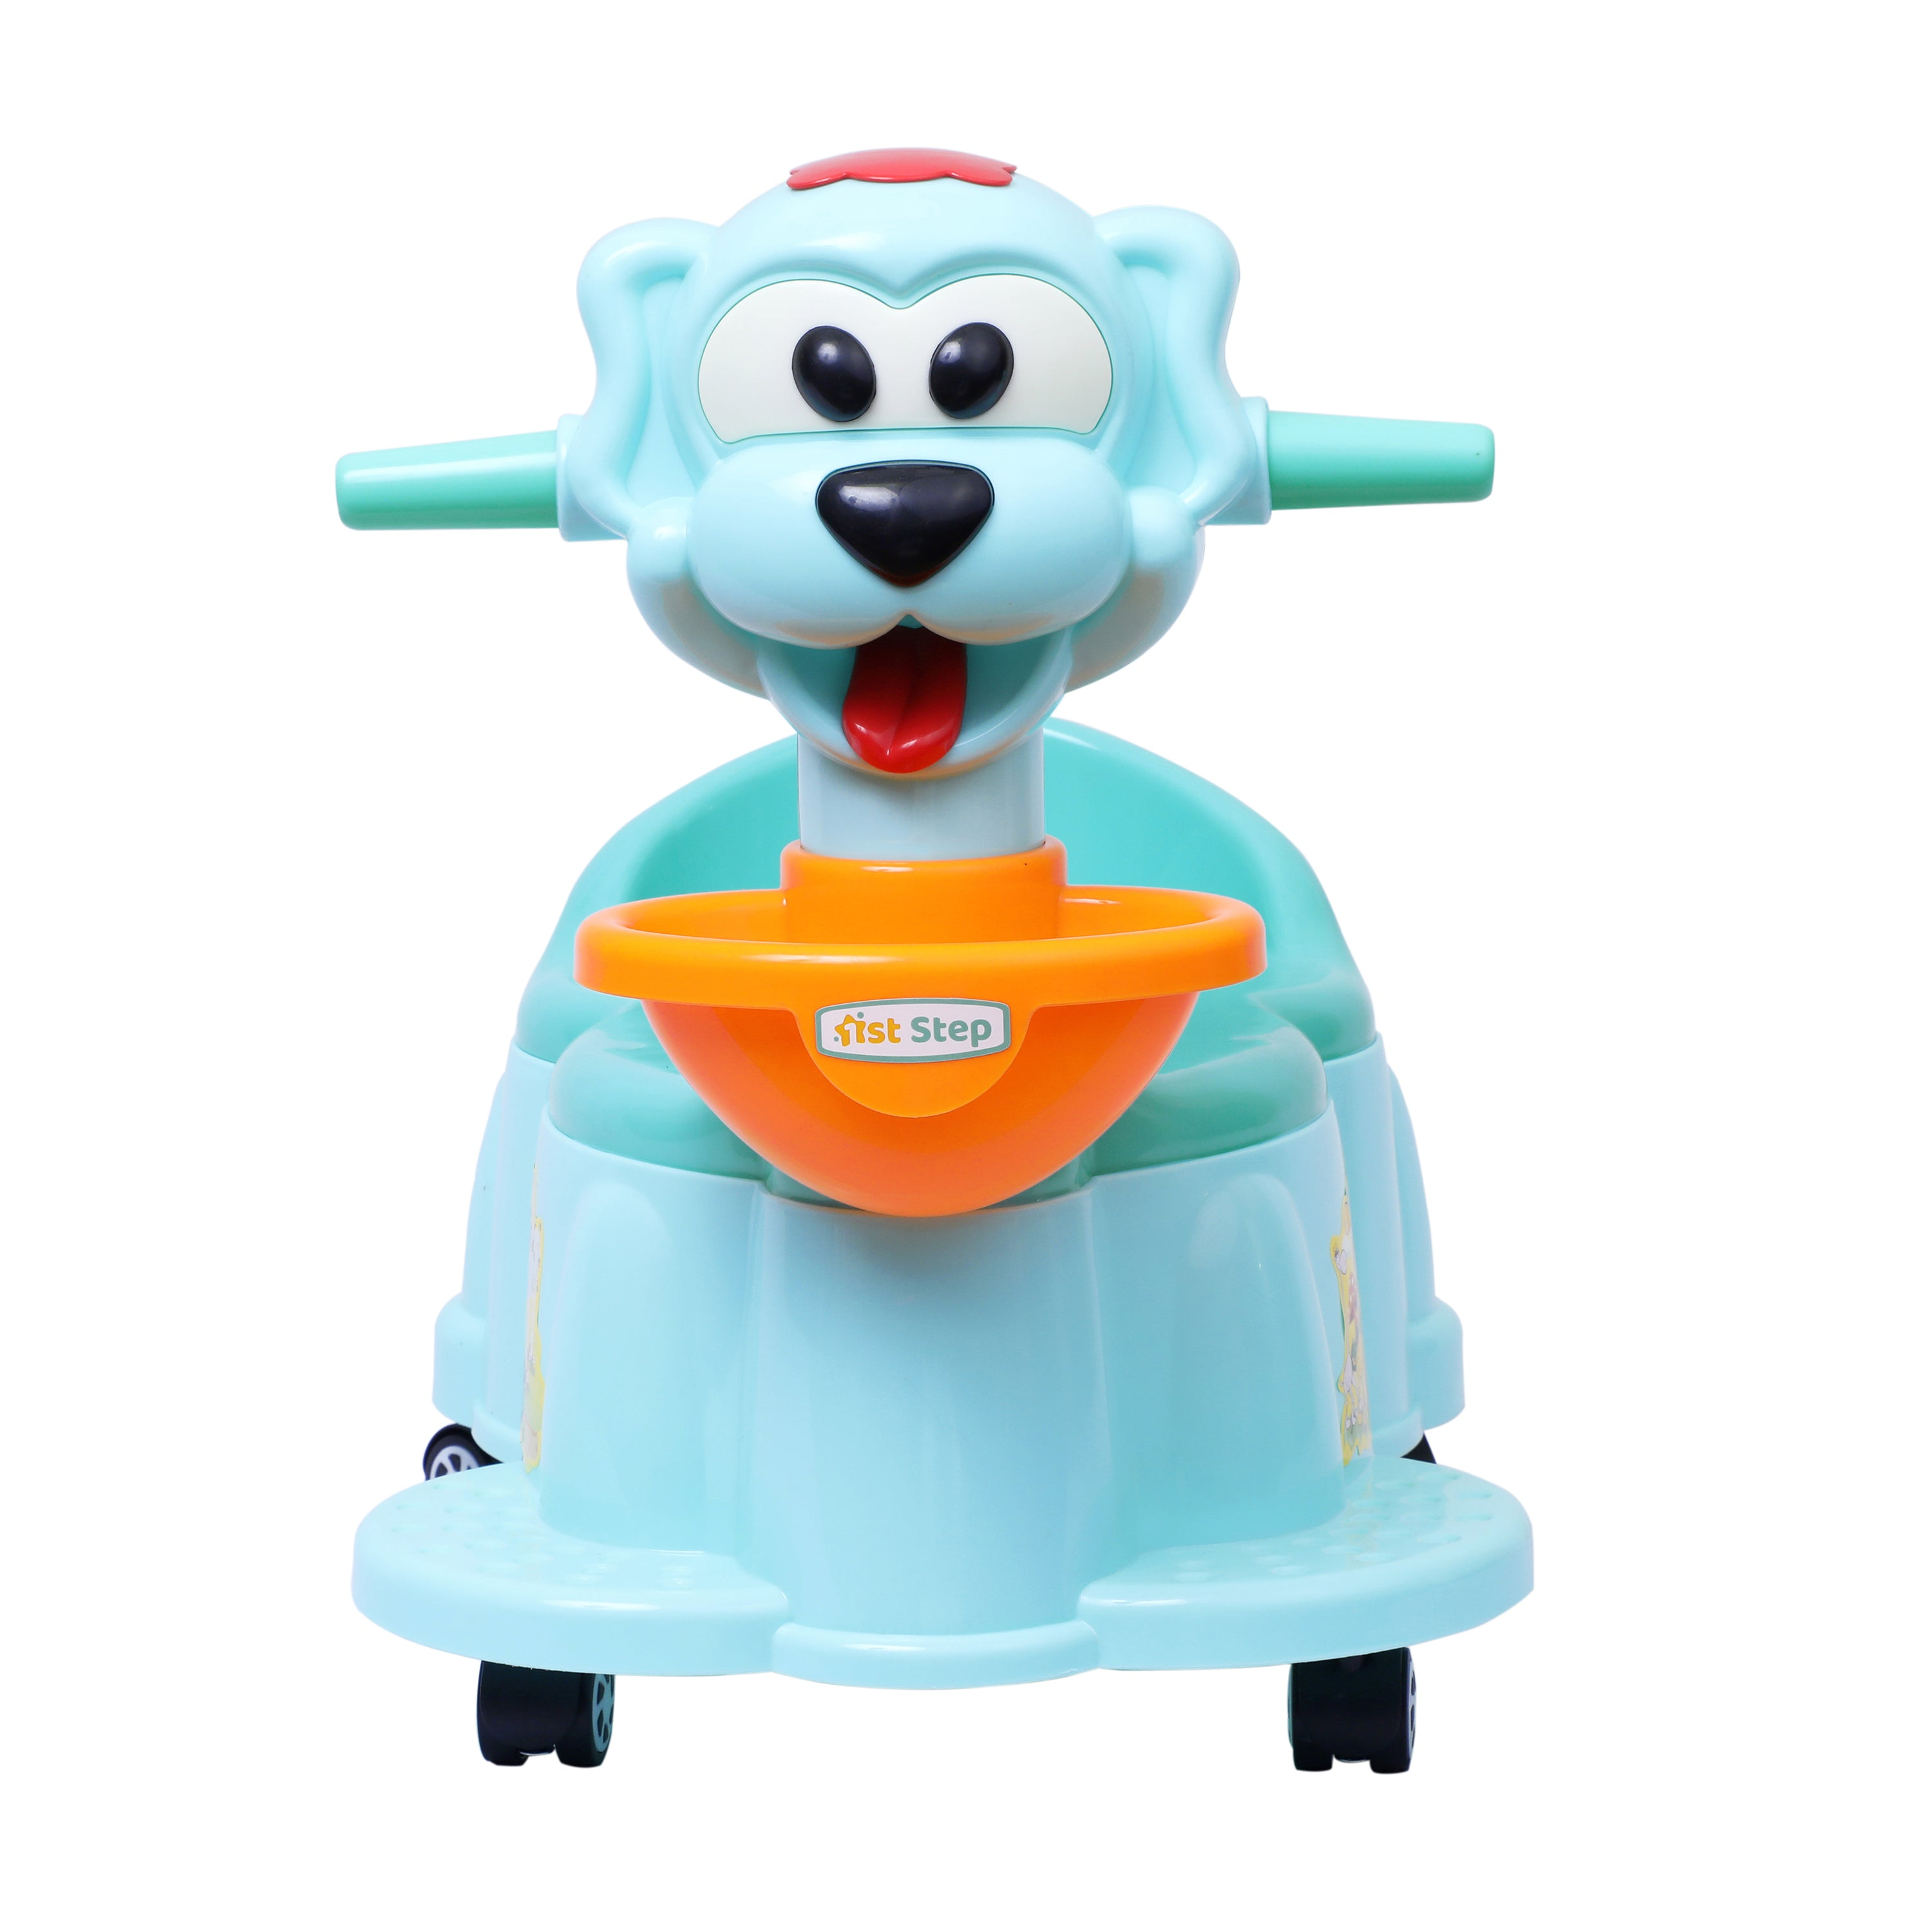 1st Step Baby Musical Potty Chair With Wheels Doggy Design-Aqua Blue